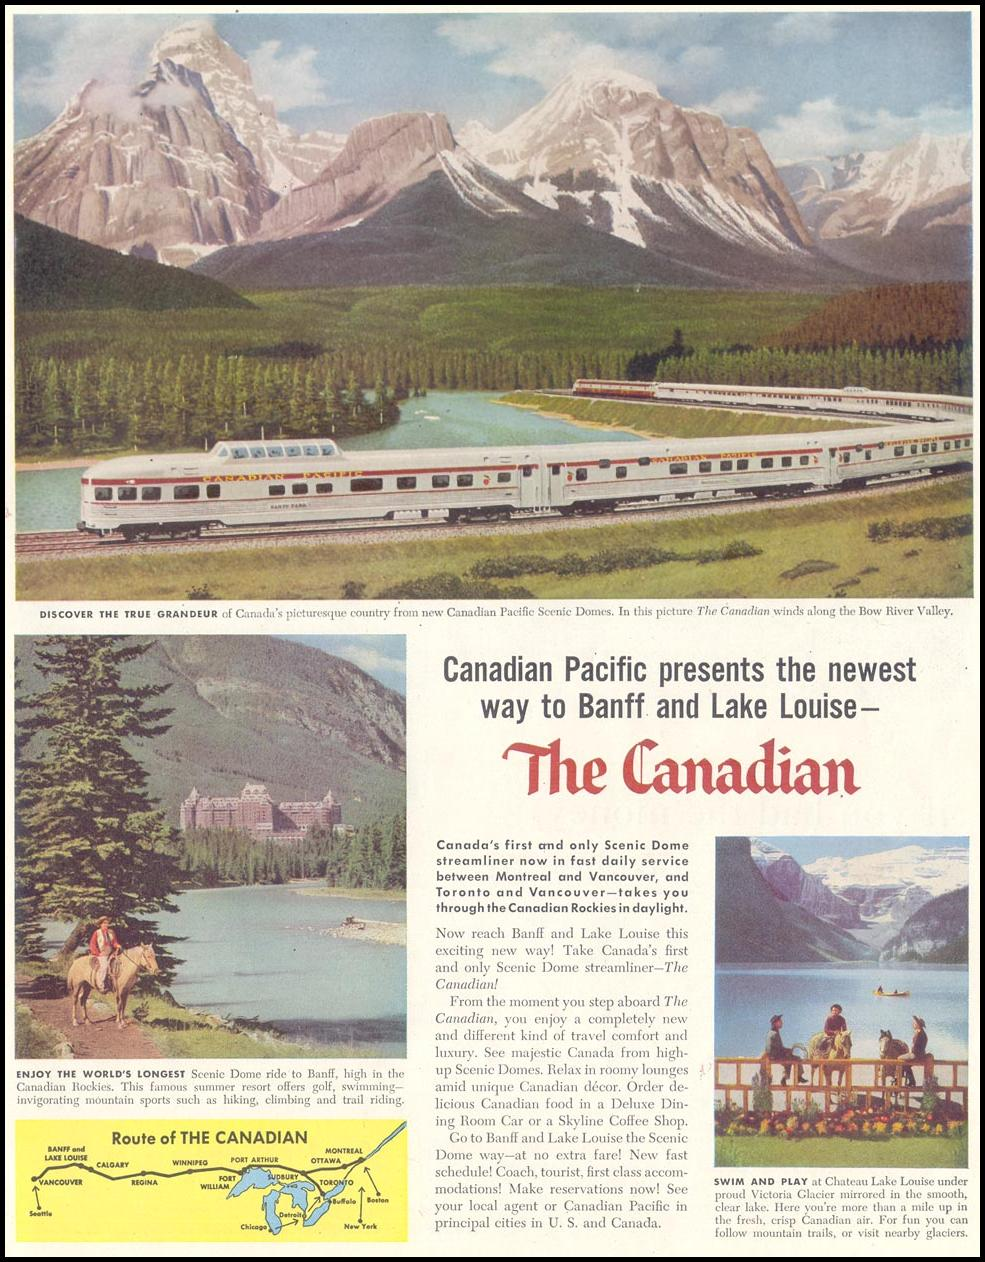 RAIL TRAVEL SATURDAY EVENING POST 06/04/1955 p. 89